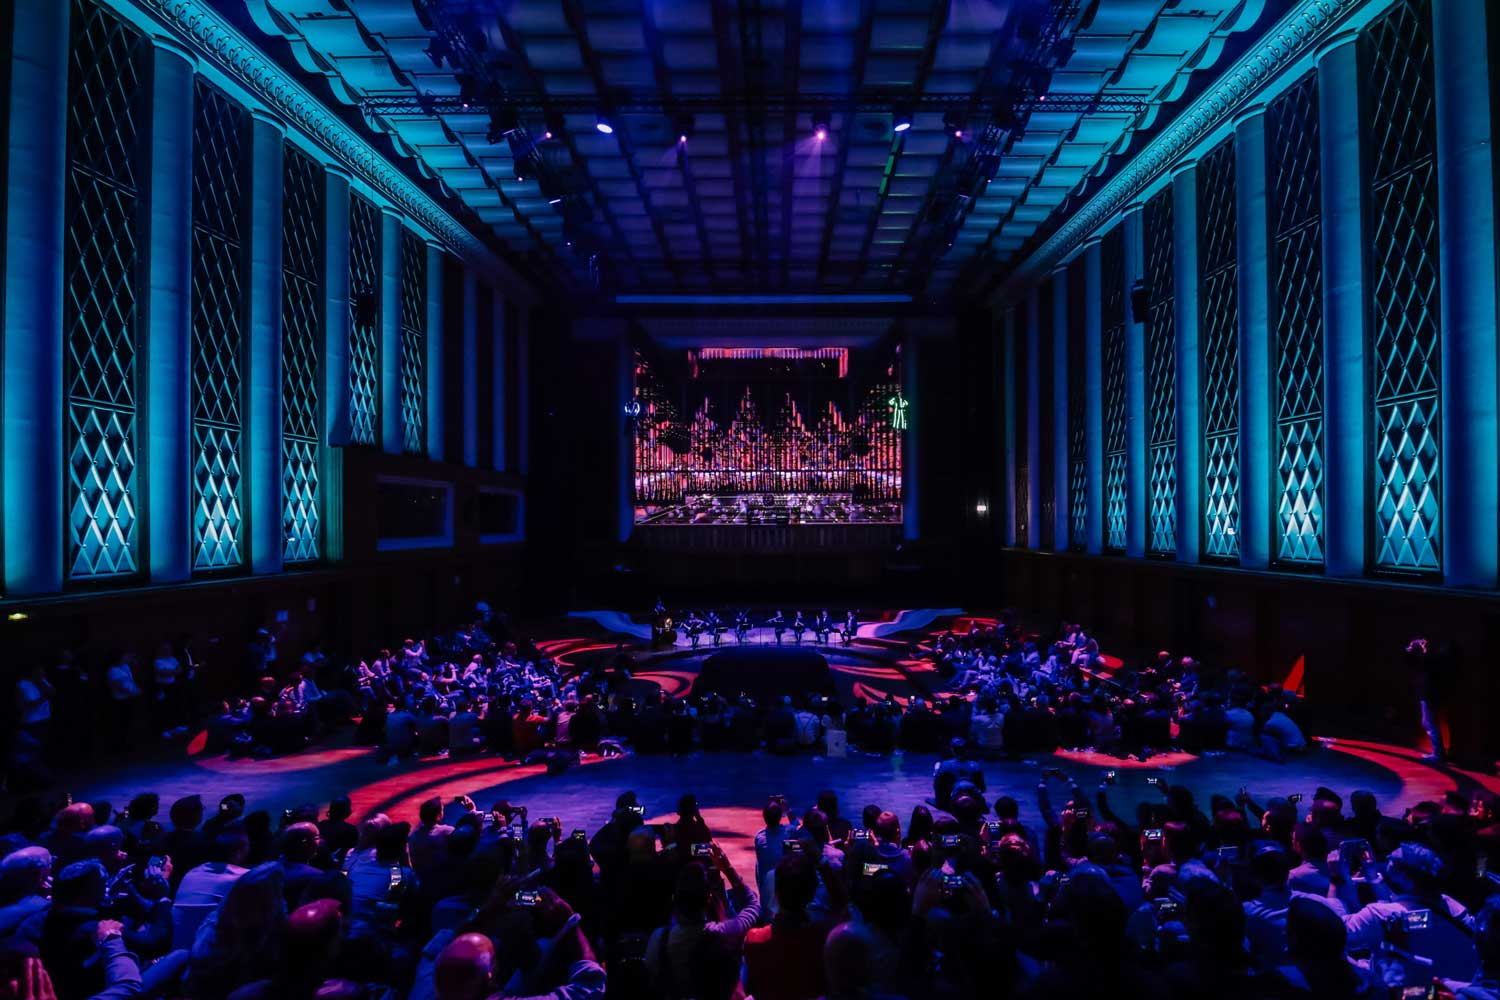 Immersive Show-Zeiss-videomapping-DrawLight